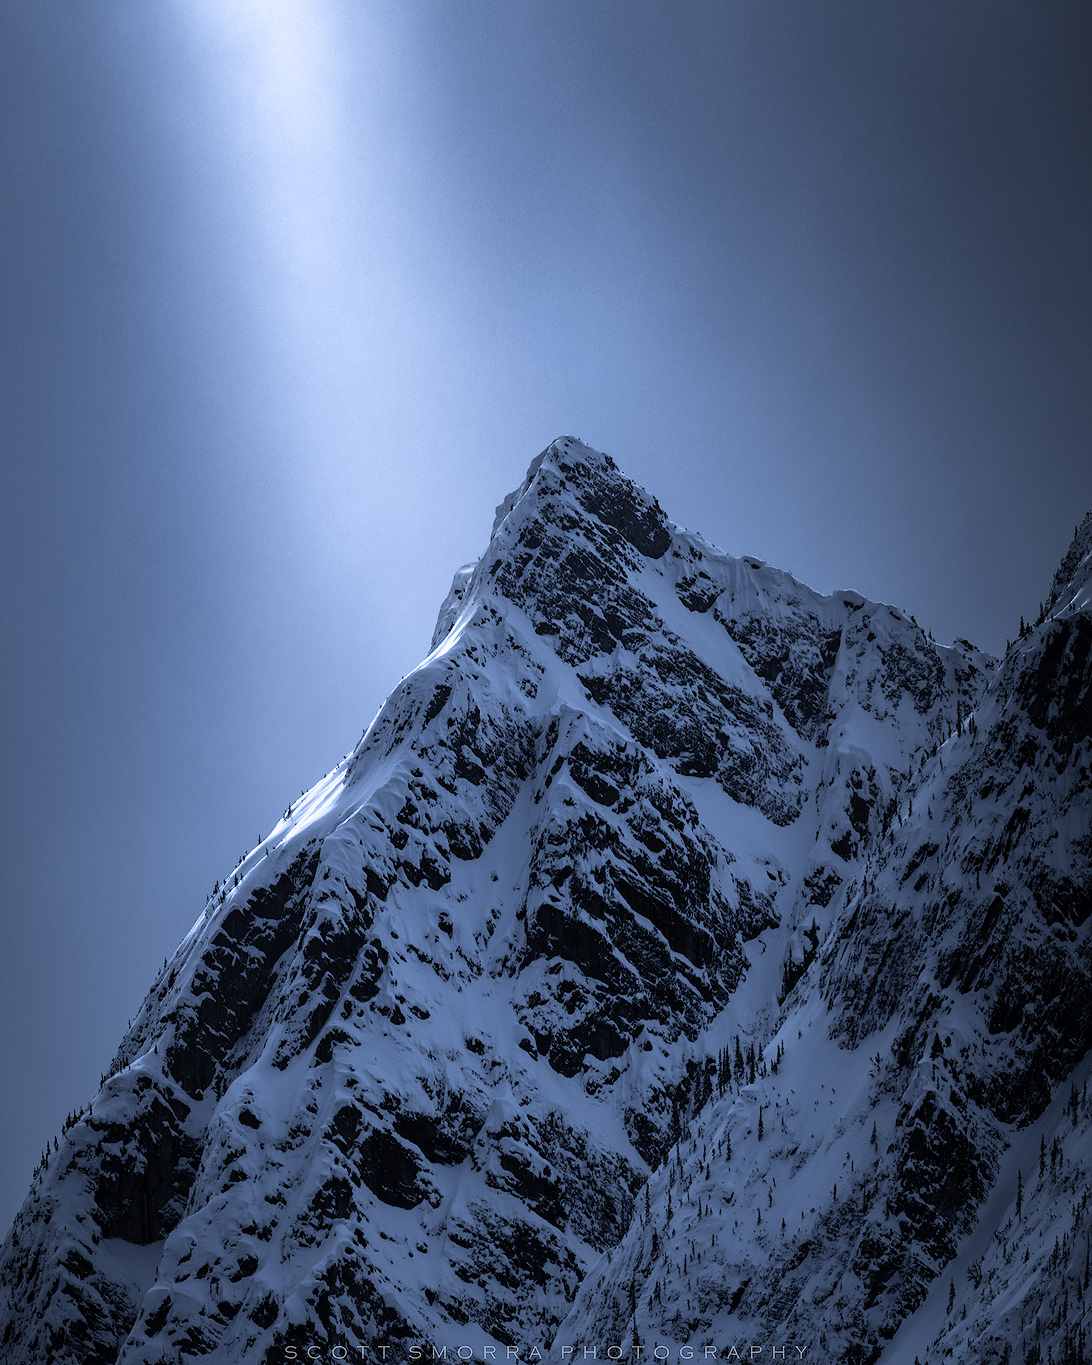 Jasper National Park, Alberta, Canada, sunlight, beam, snow, mountain, photo